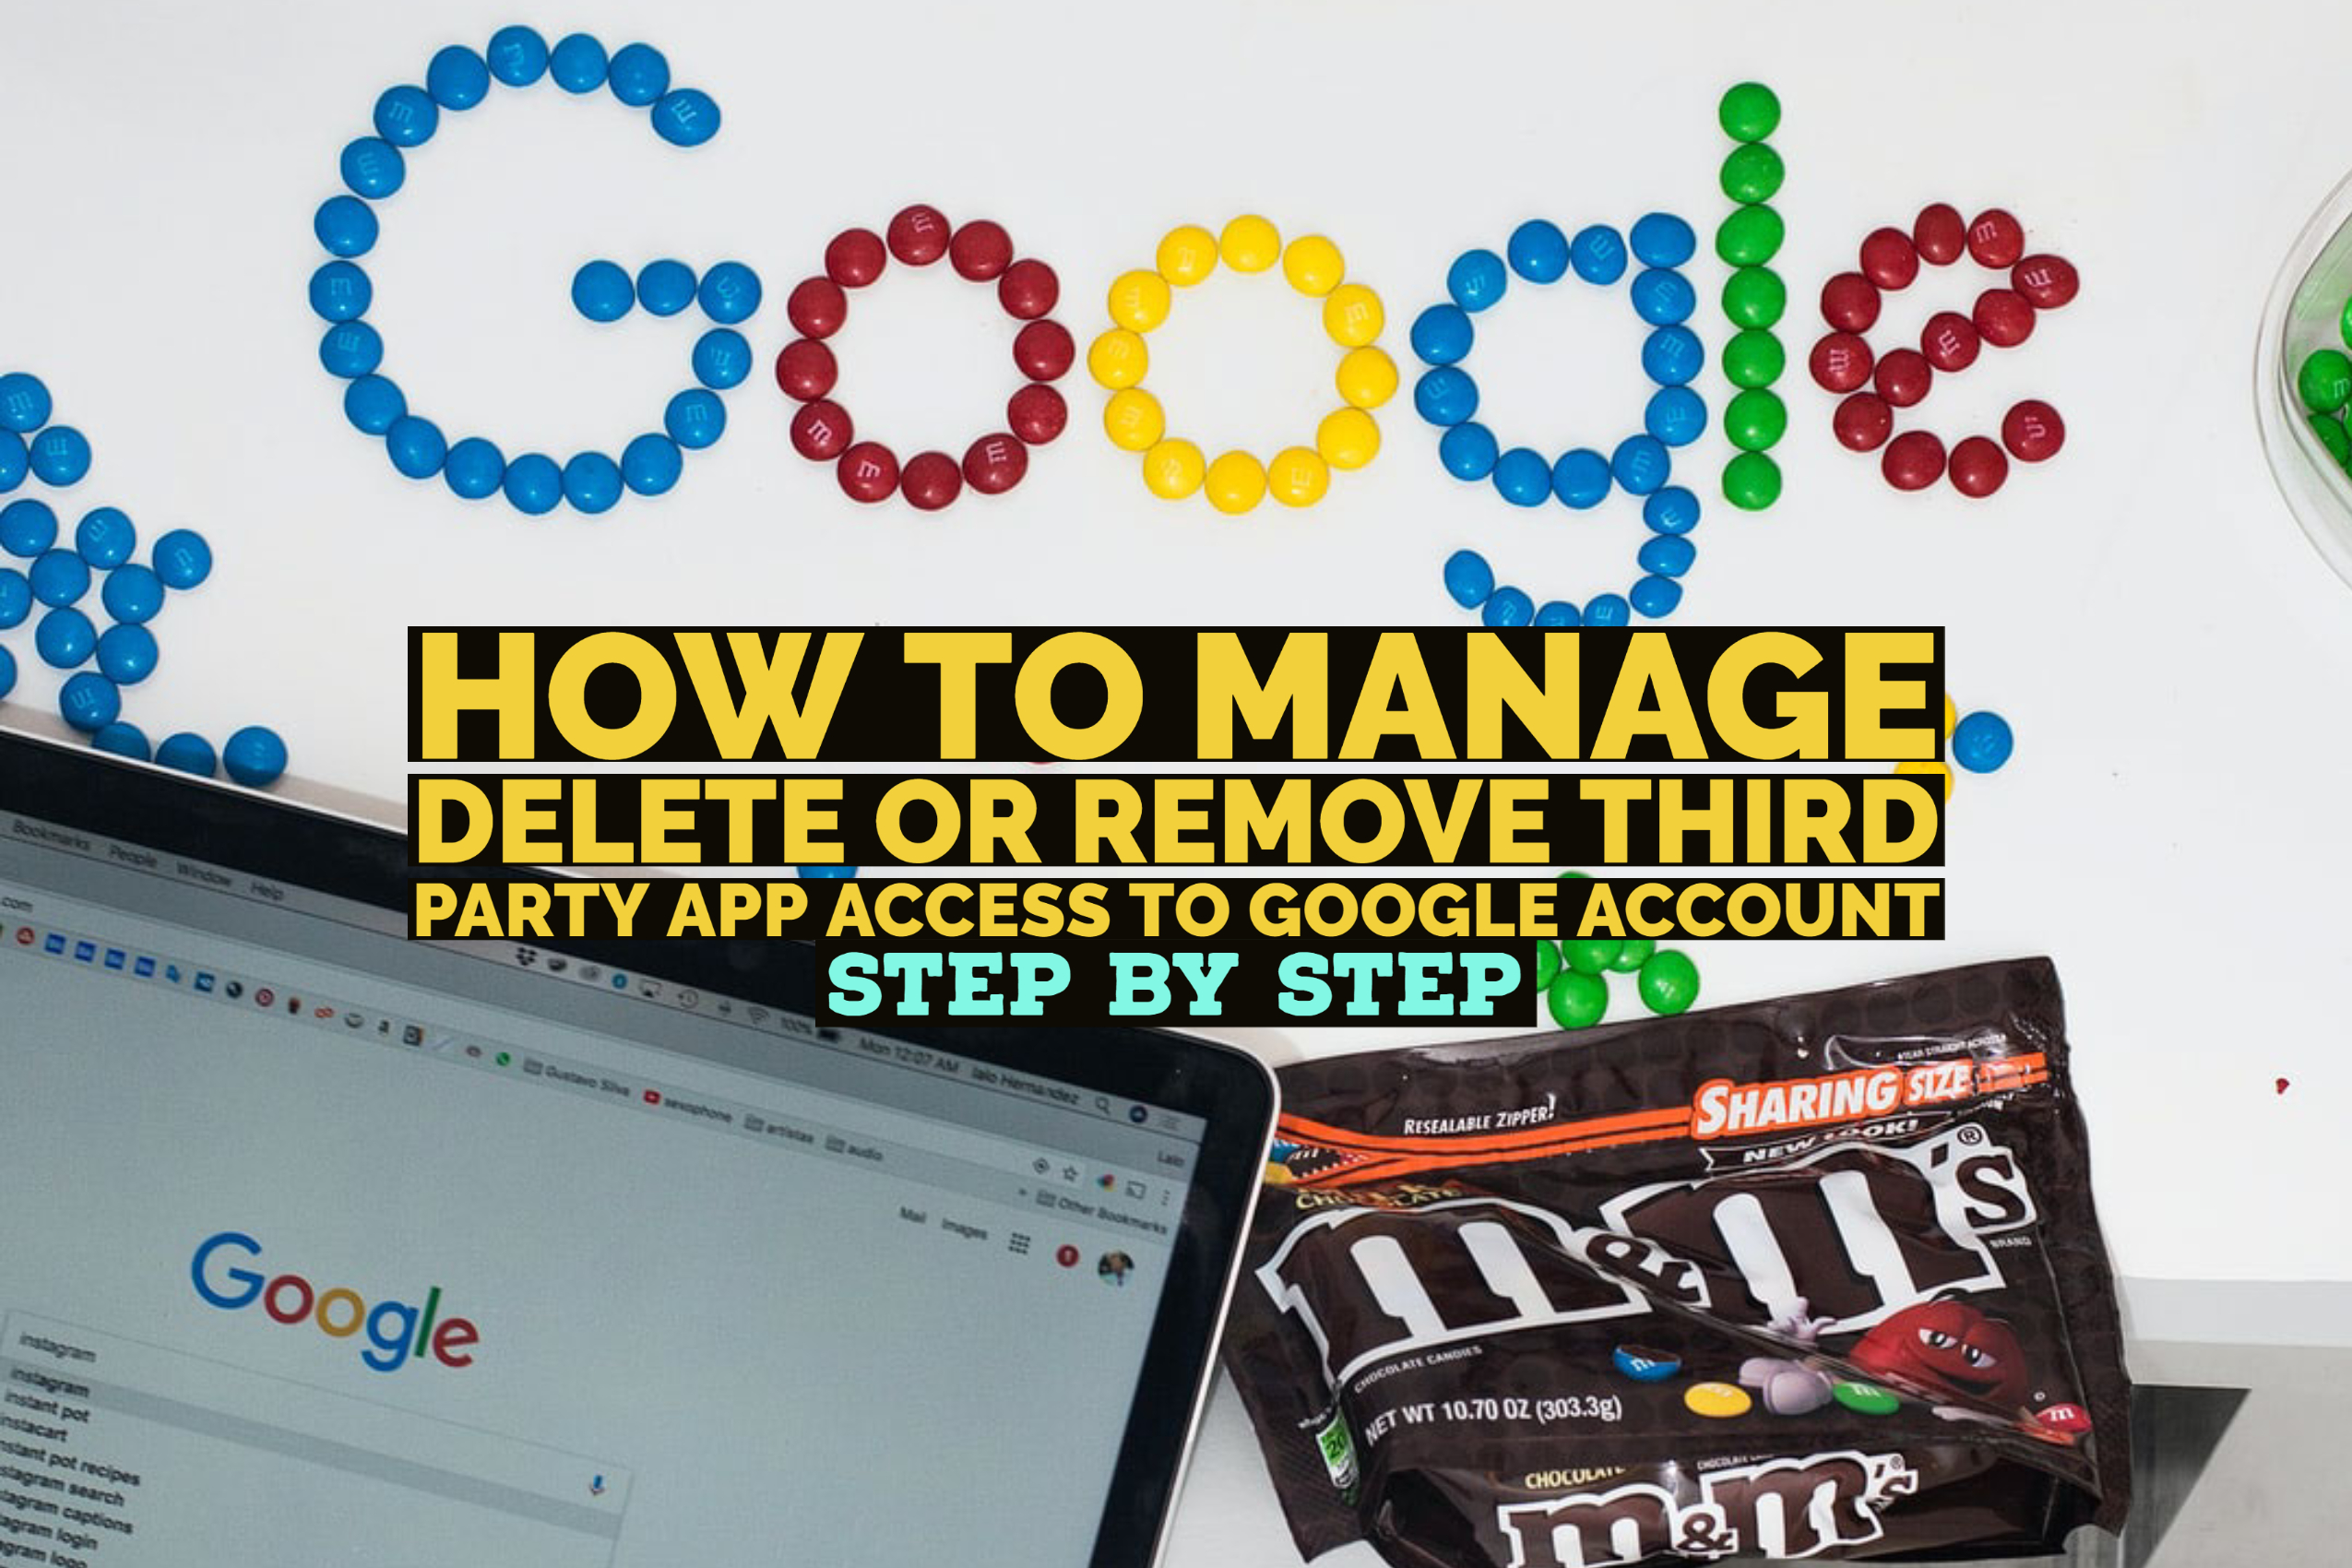 How to Manage delete or remove third party app access to Google account